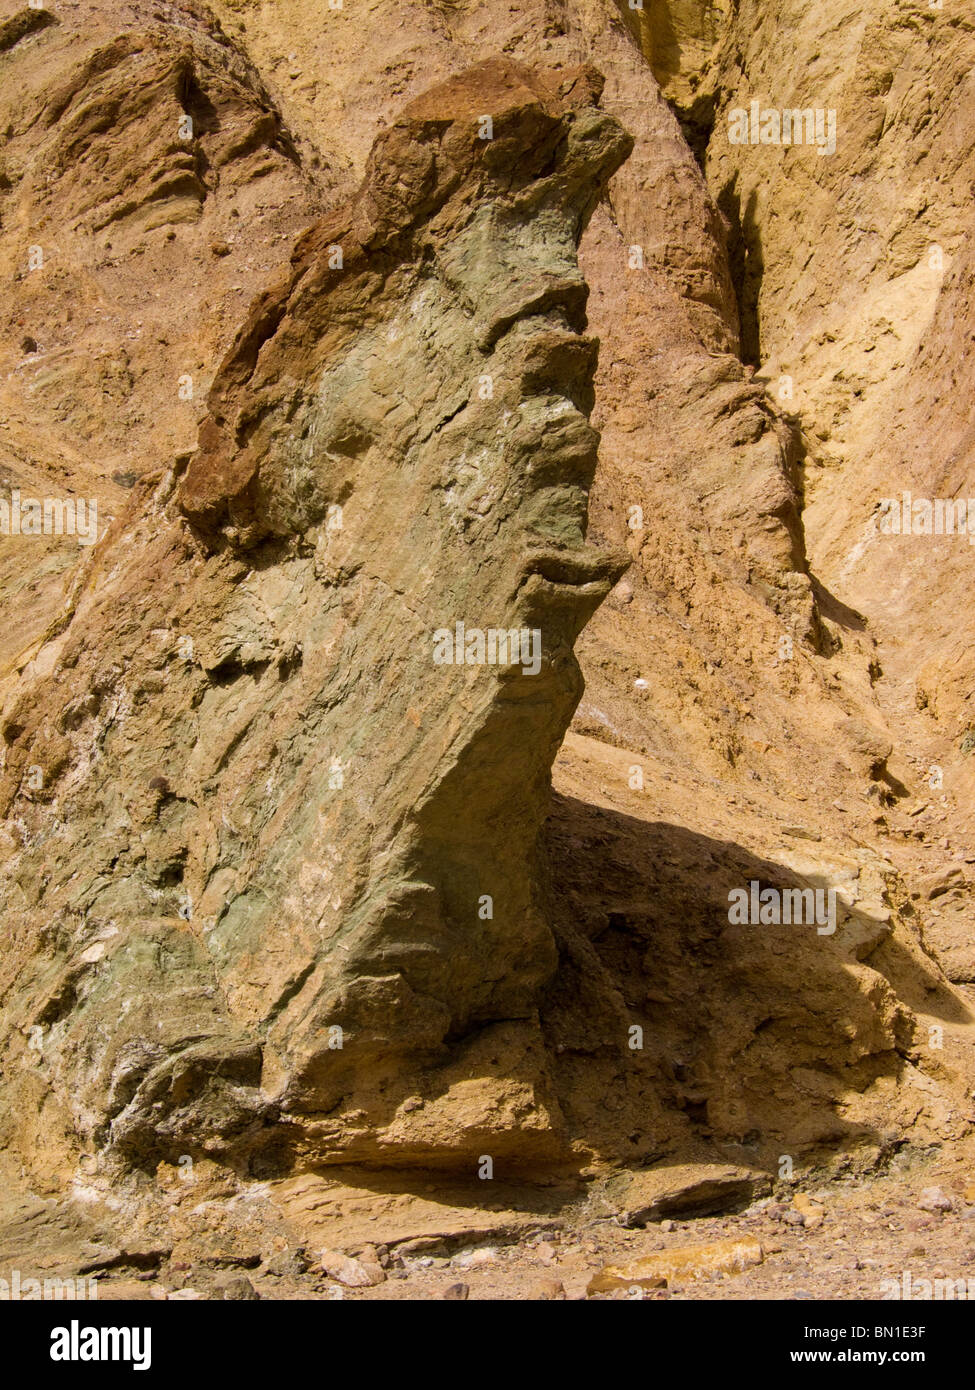 Unusual rock formation in Golden Canyon, Death Valley National Park, California, USA. - Stock Image